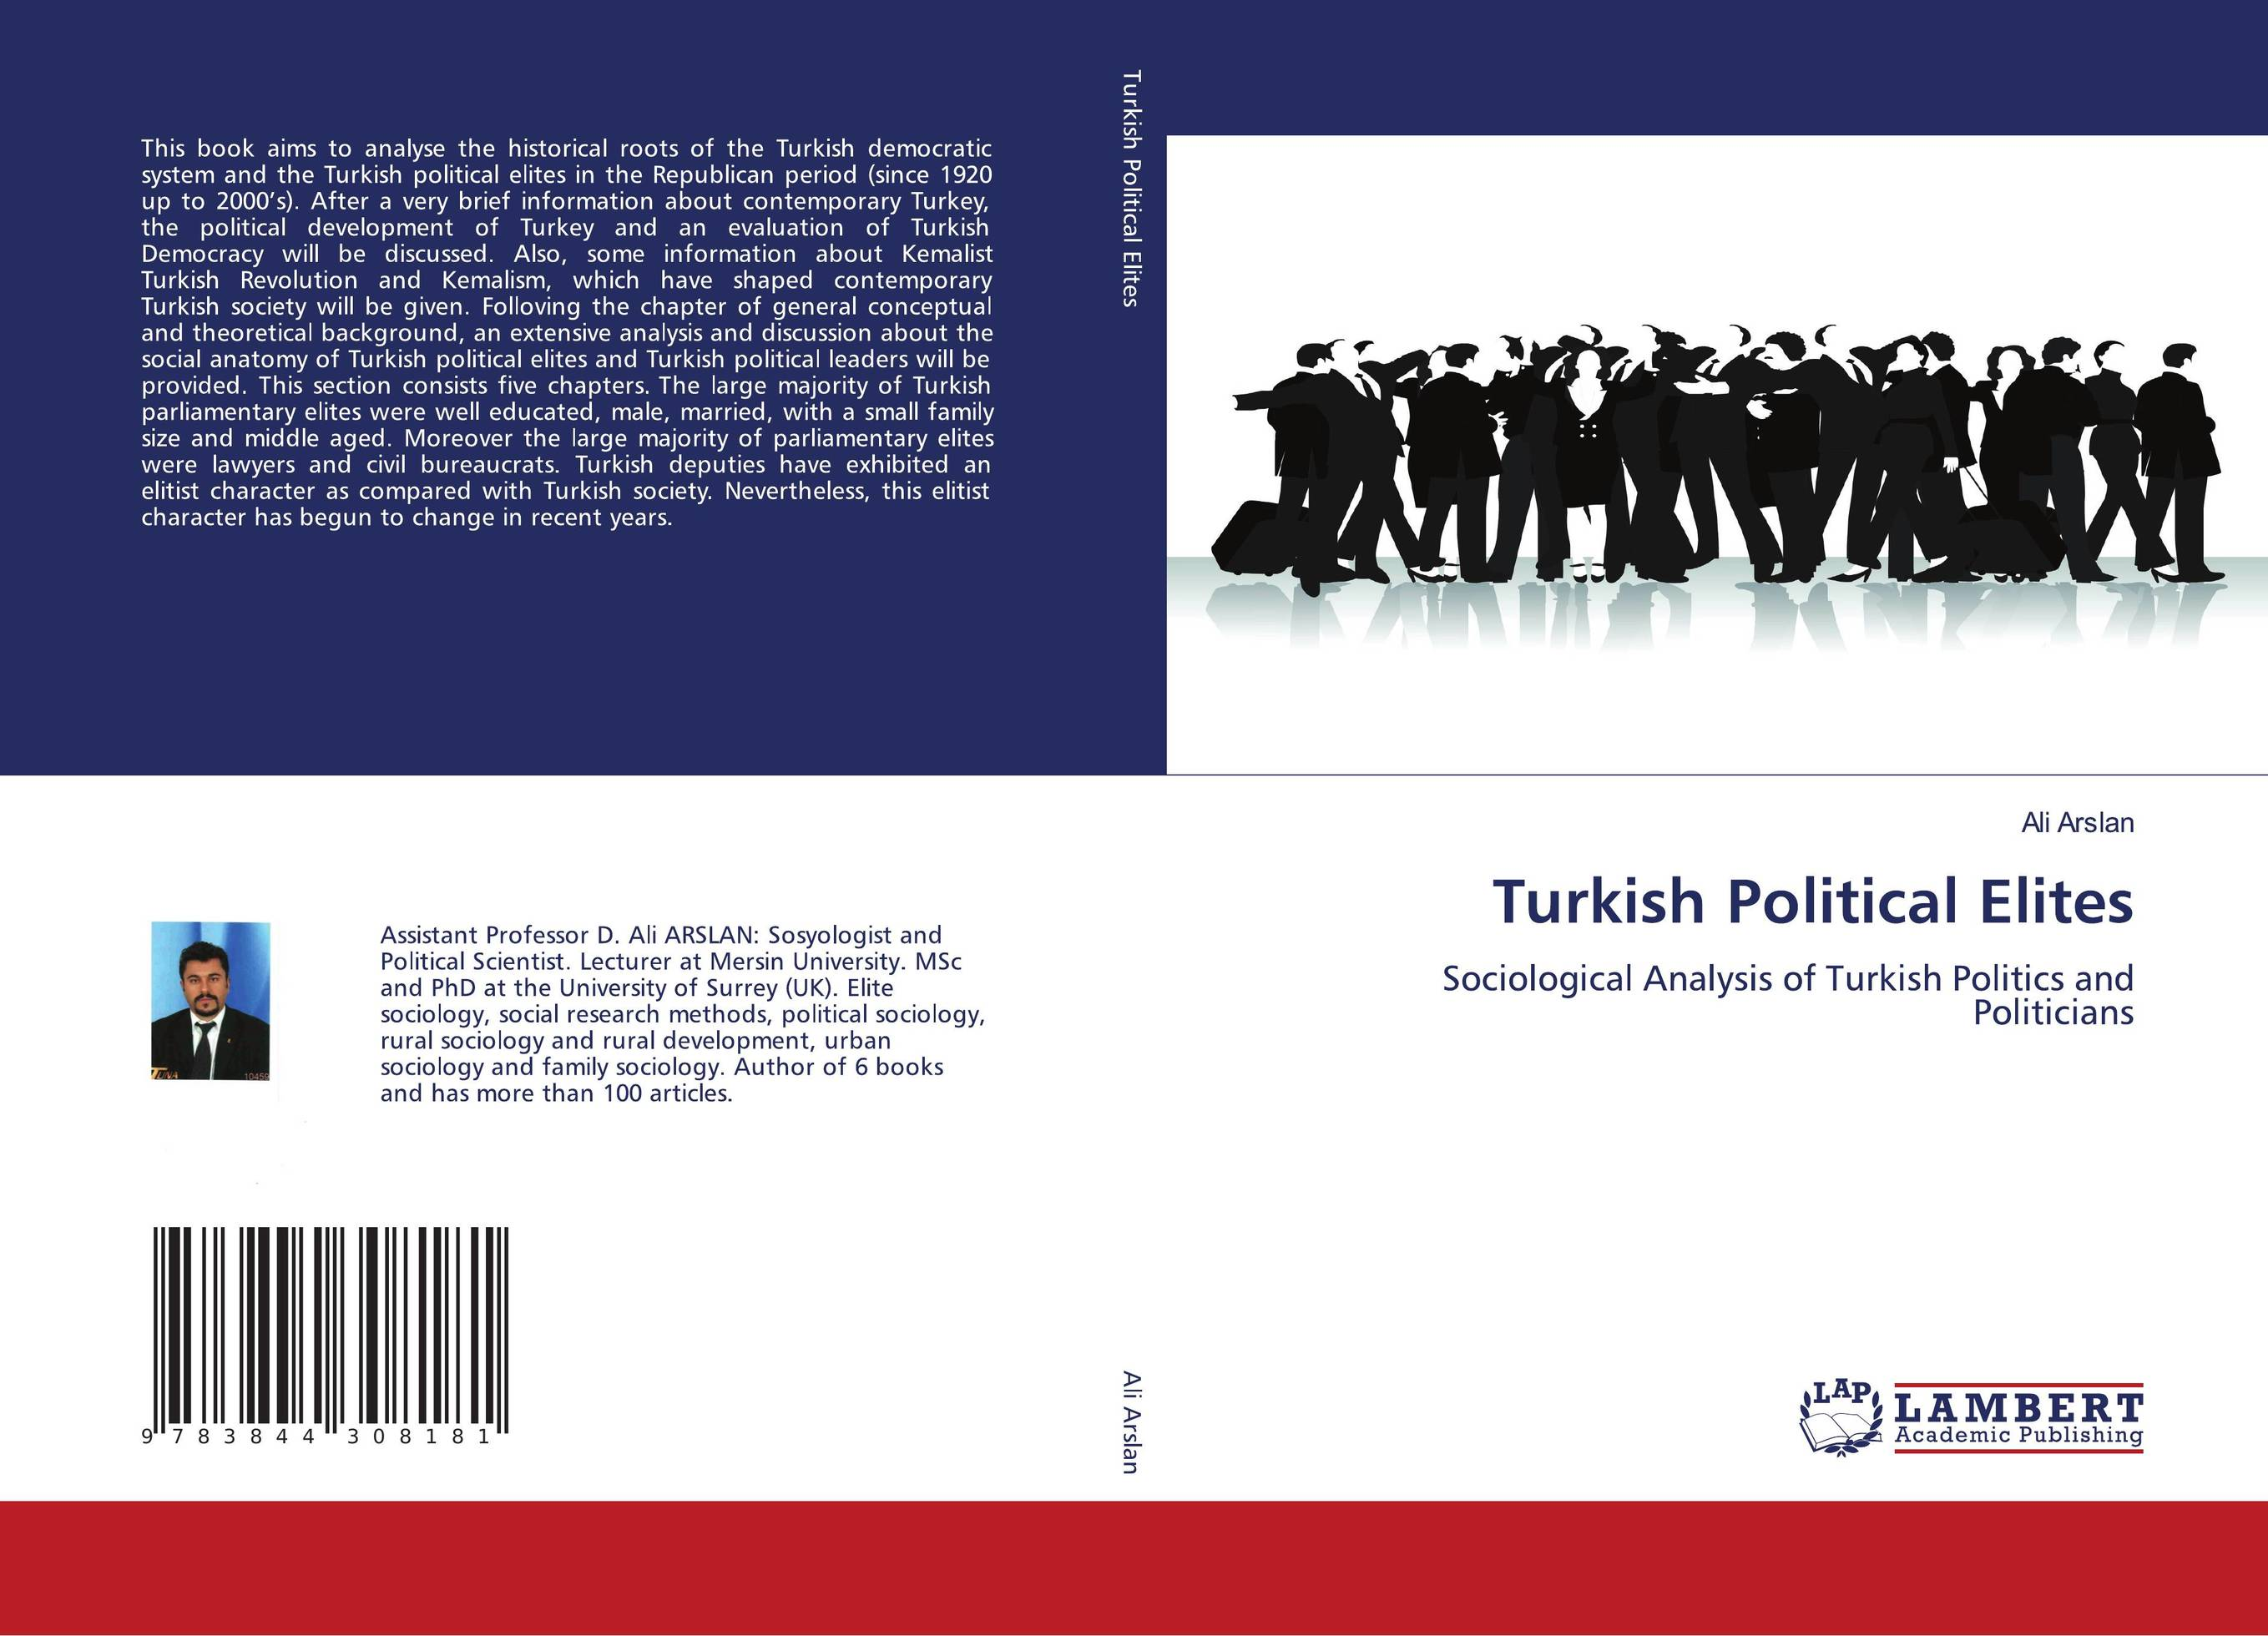 9783844308181 Turkish Political Elites ALI ARSLAN